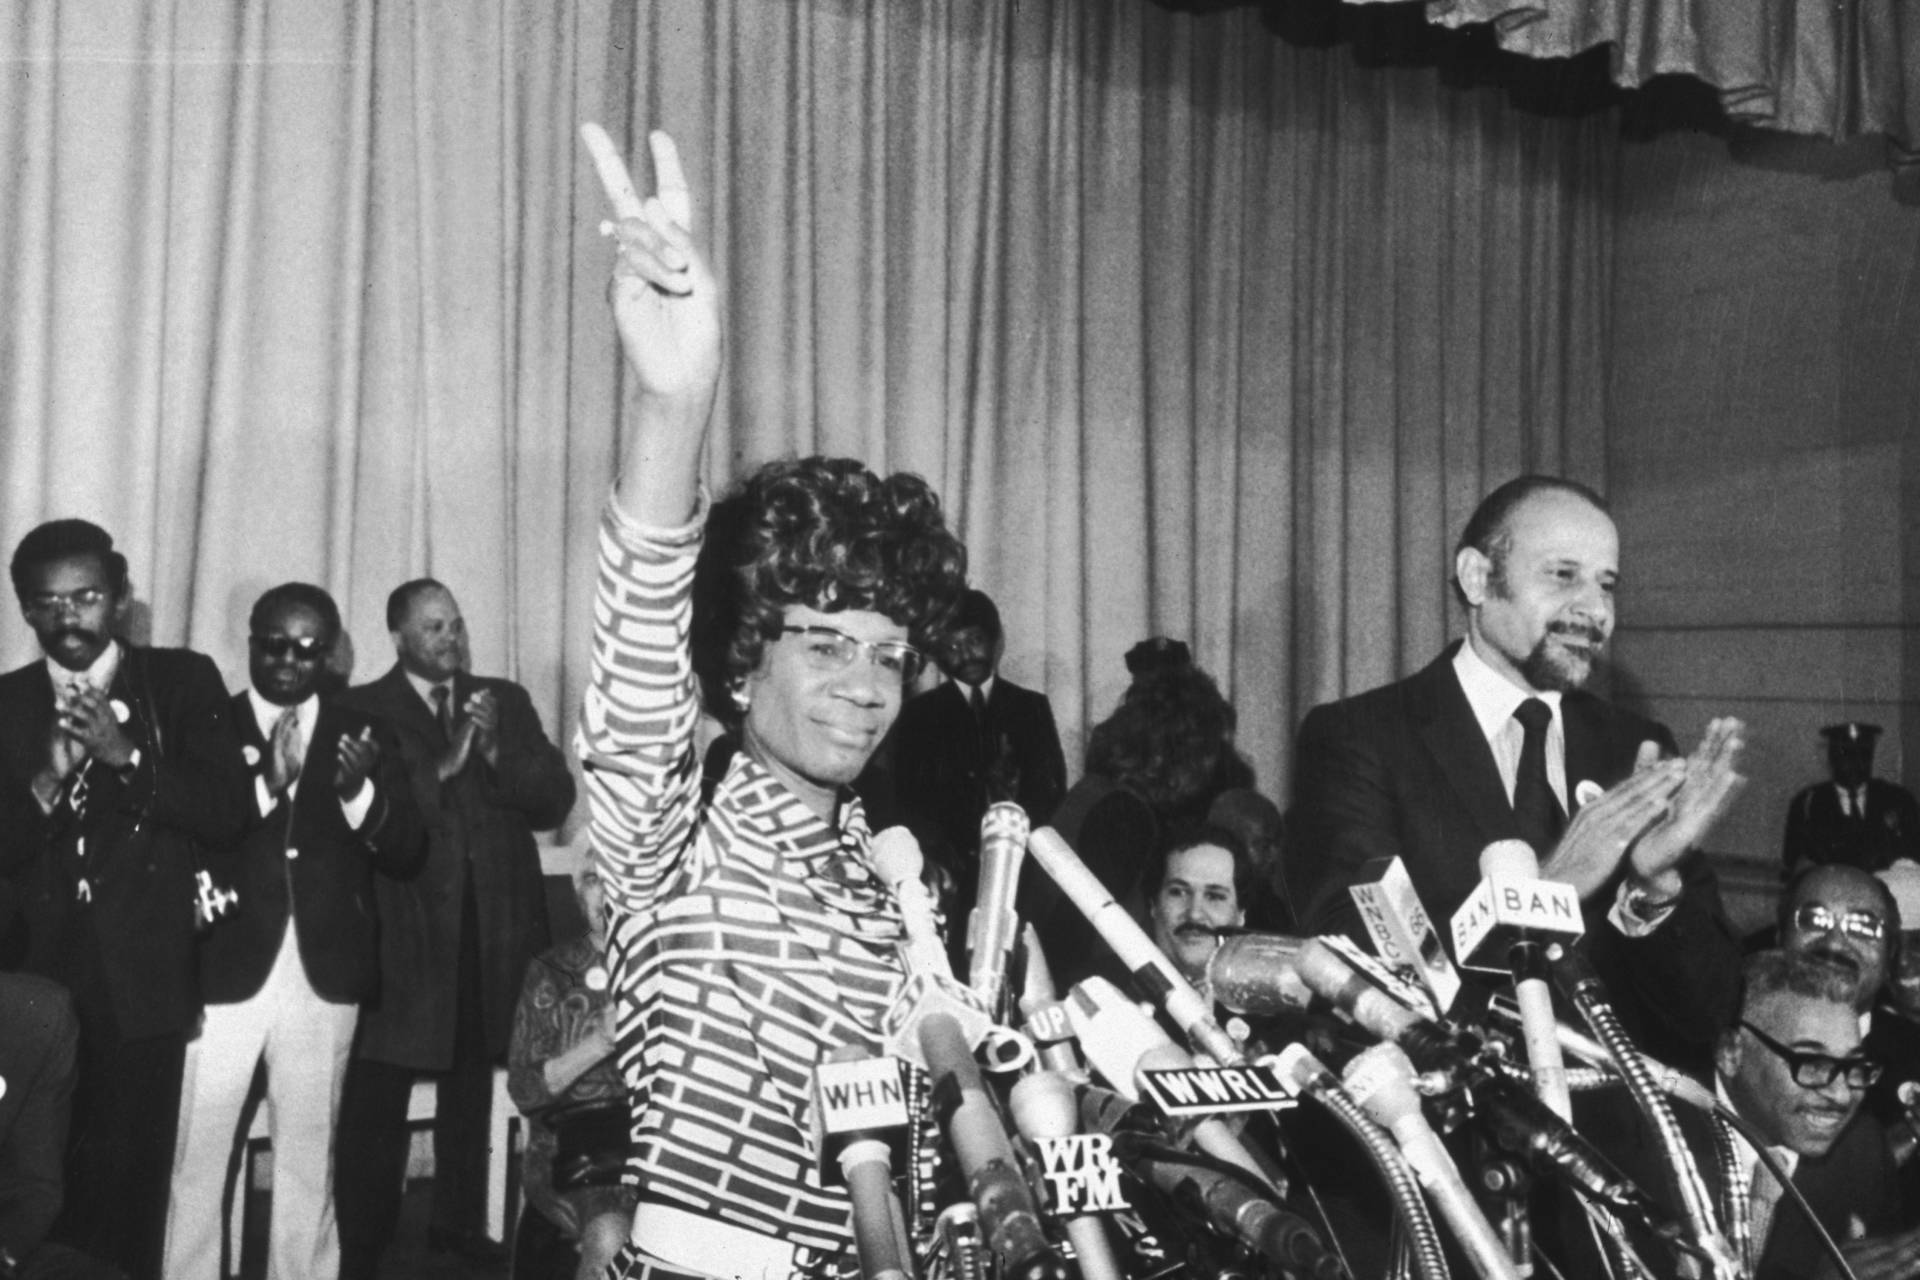 New York City says it will erect a statue of Shirley Chisholm, the first black woman elected to Congress. Chisholm is seen here in a Brooklyn church in January 1972, announcing her bid for the Democratic nomination for president. Don Hogan Charles/Getty Images